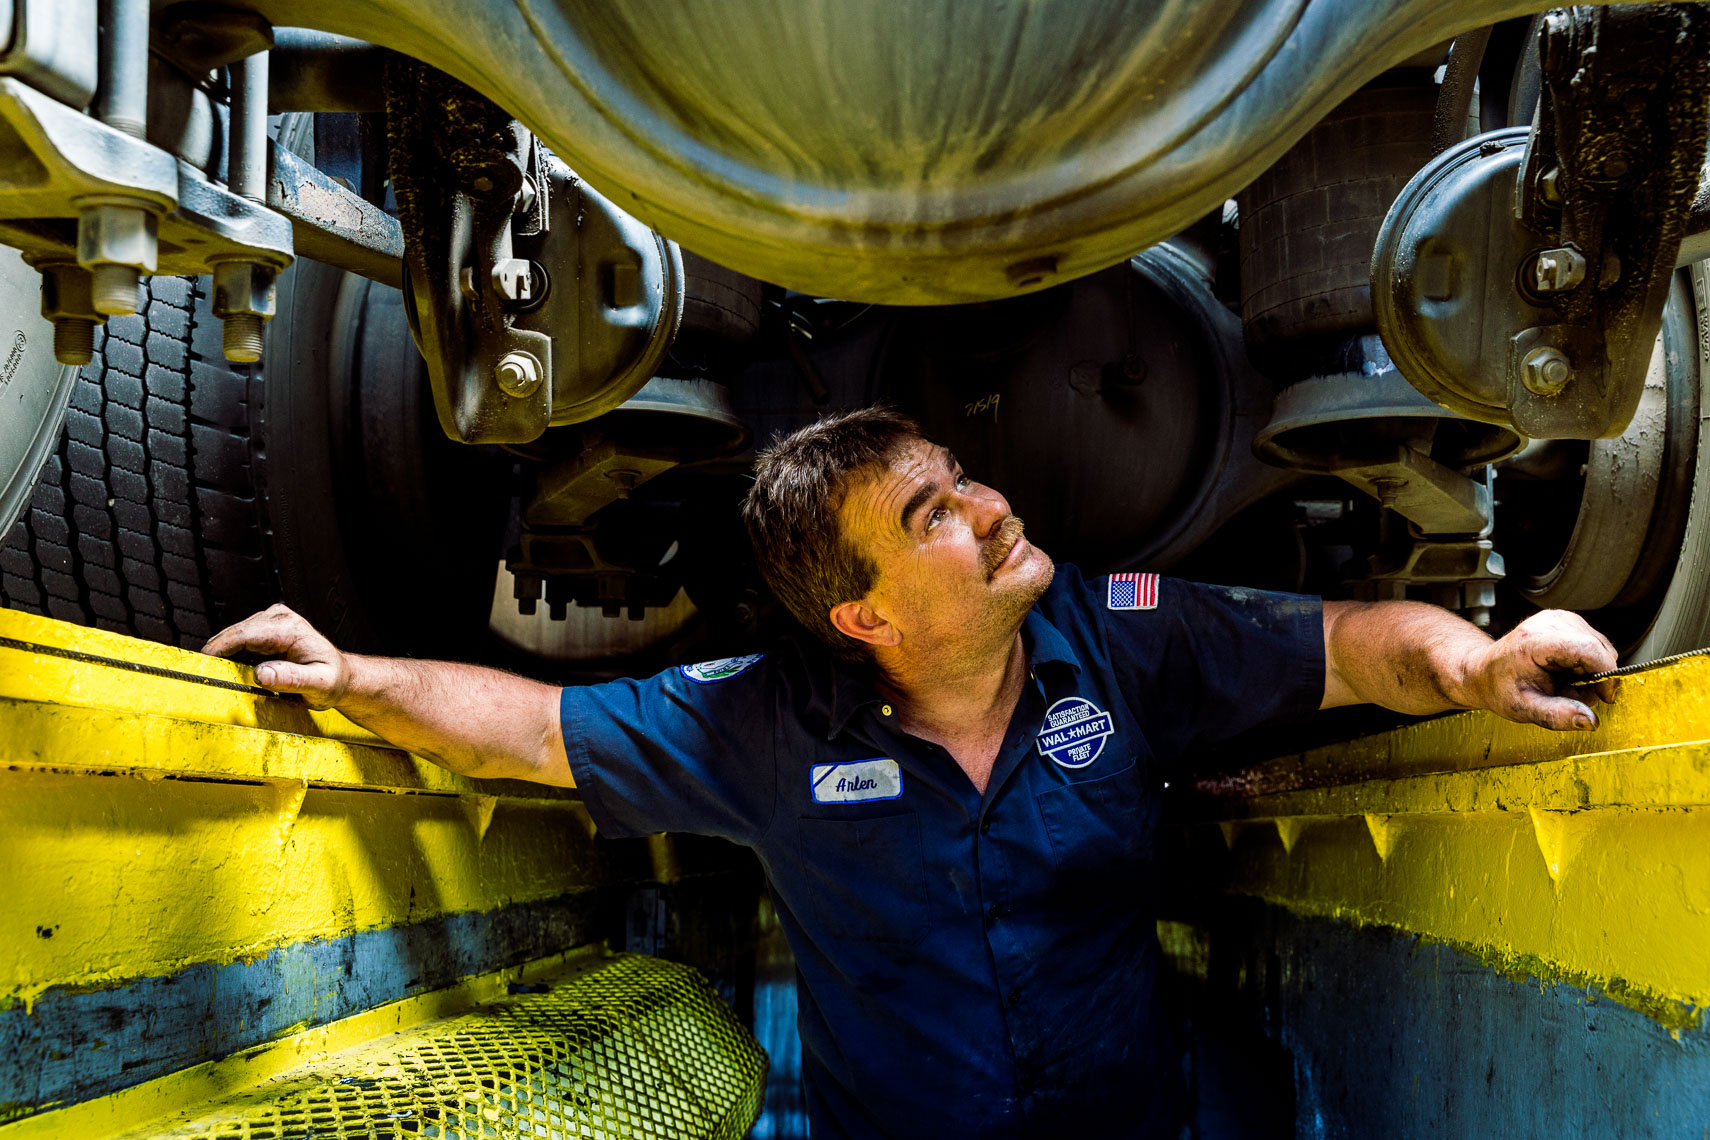 Portrait of a Mechanic